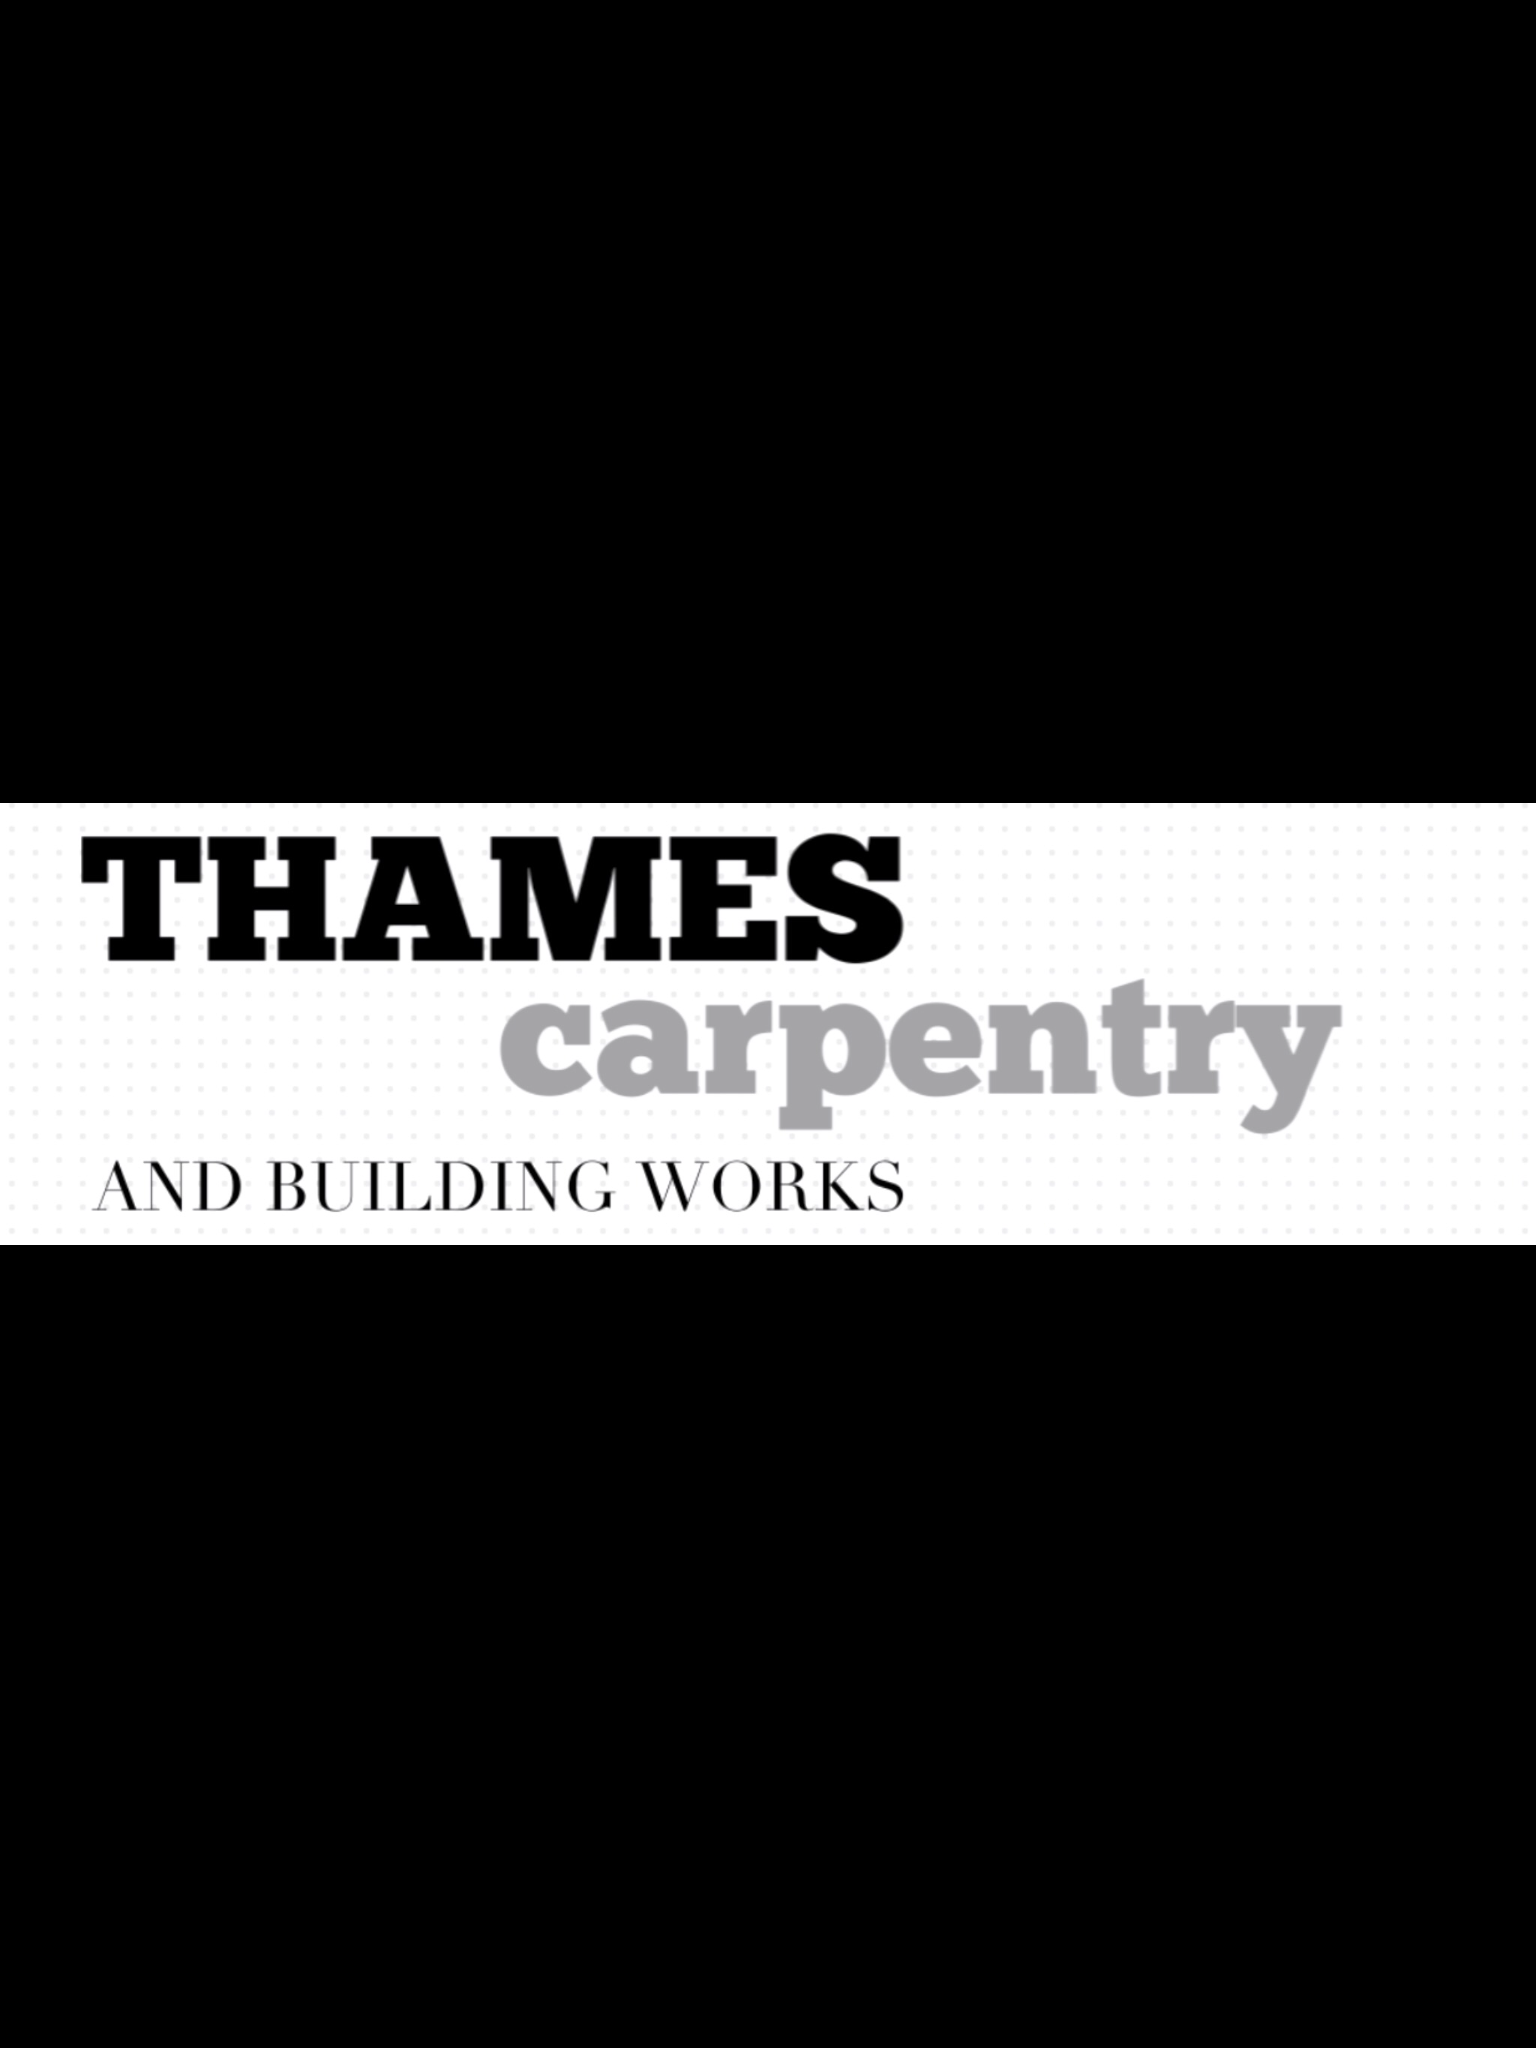 Thames carpentry and building works